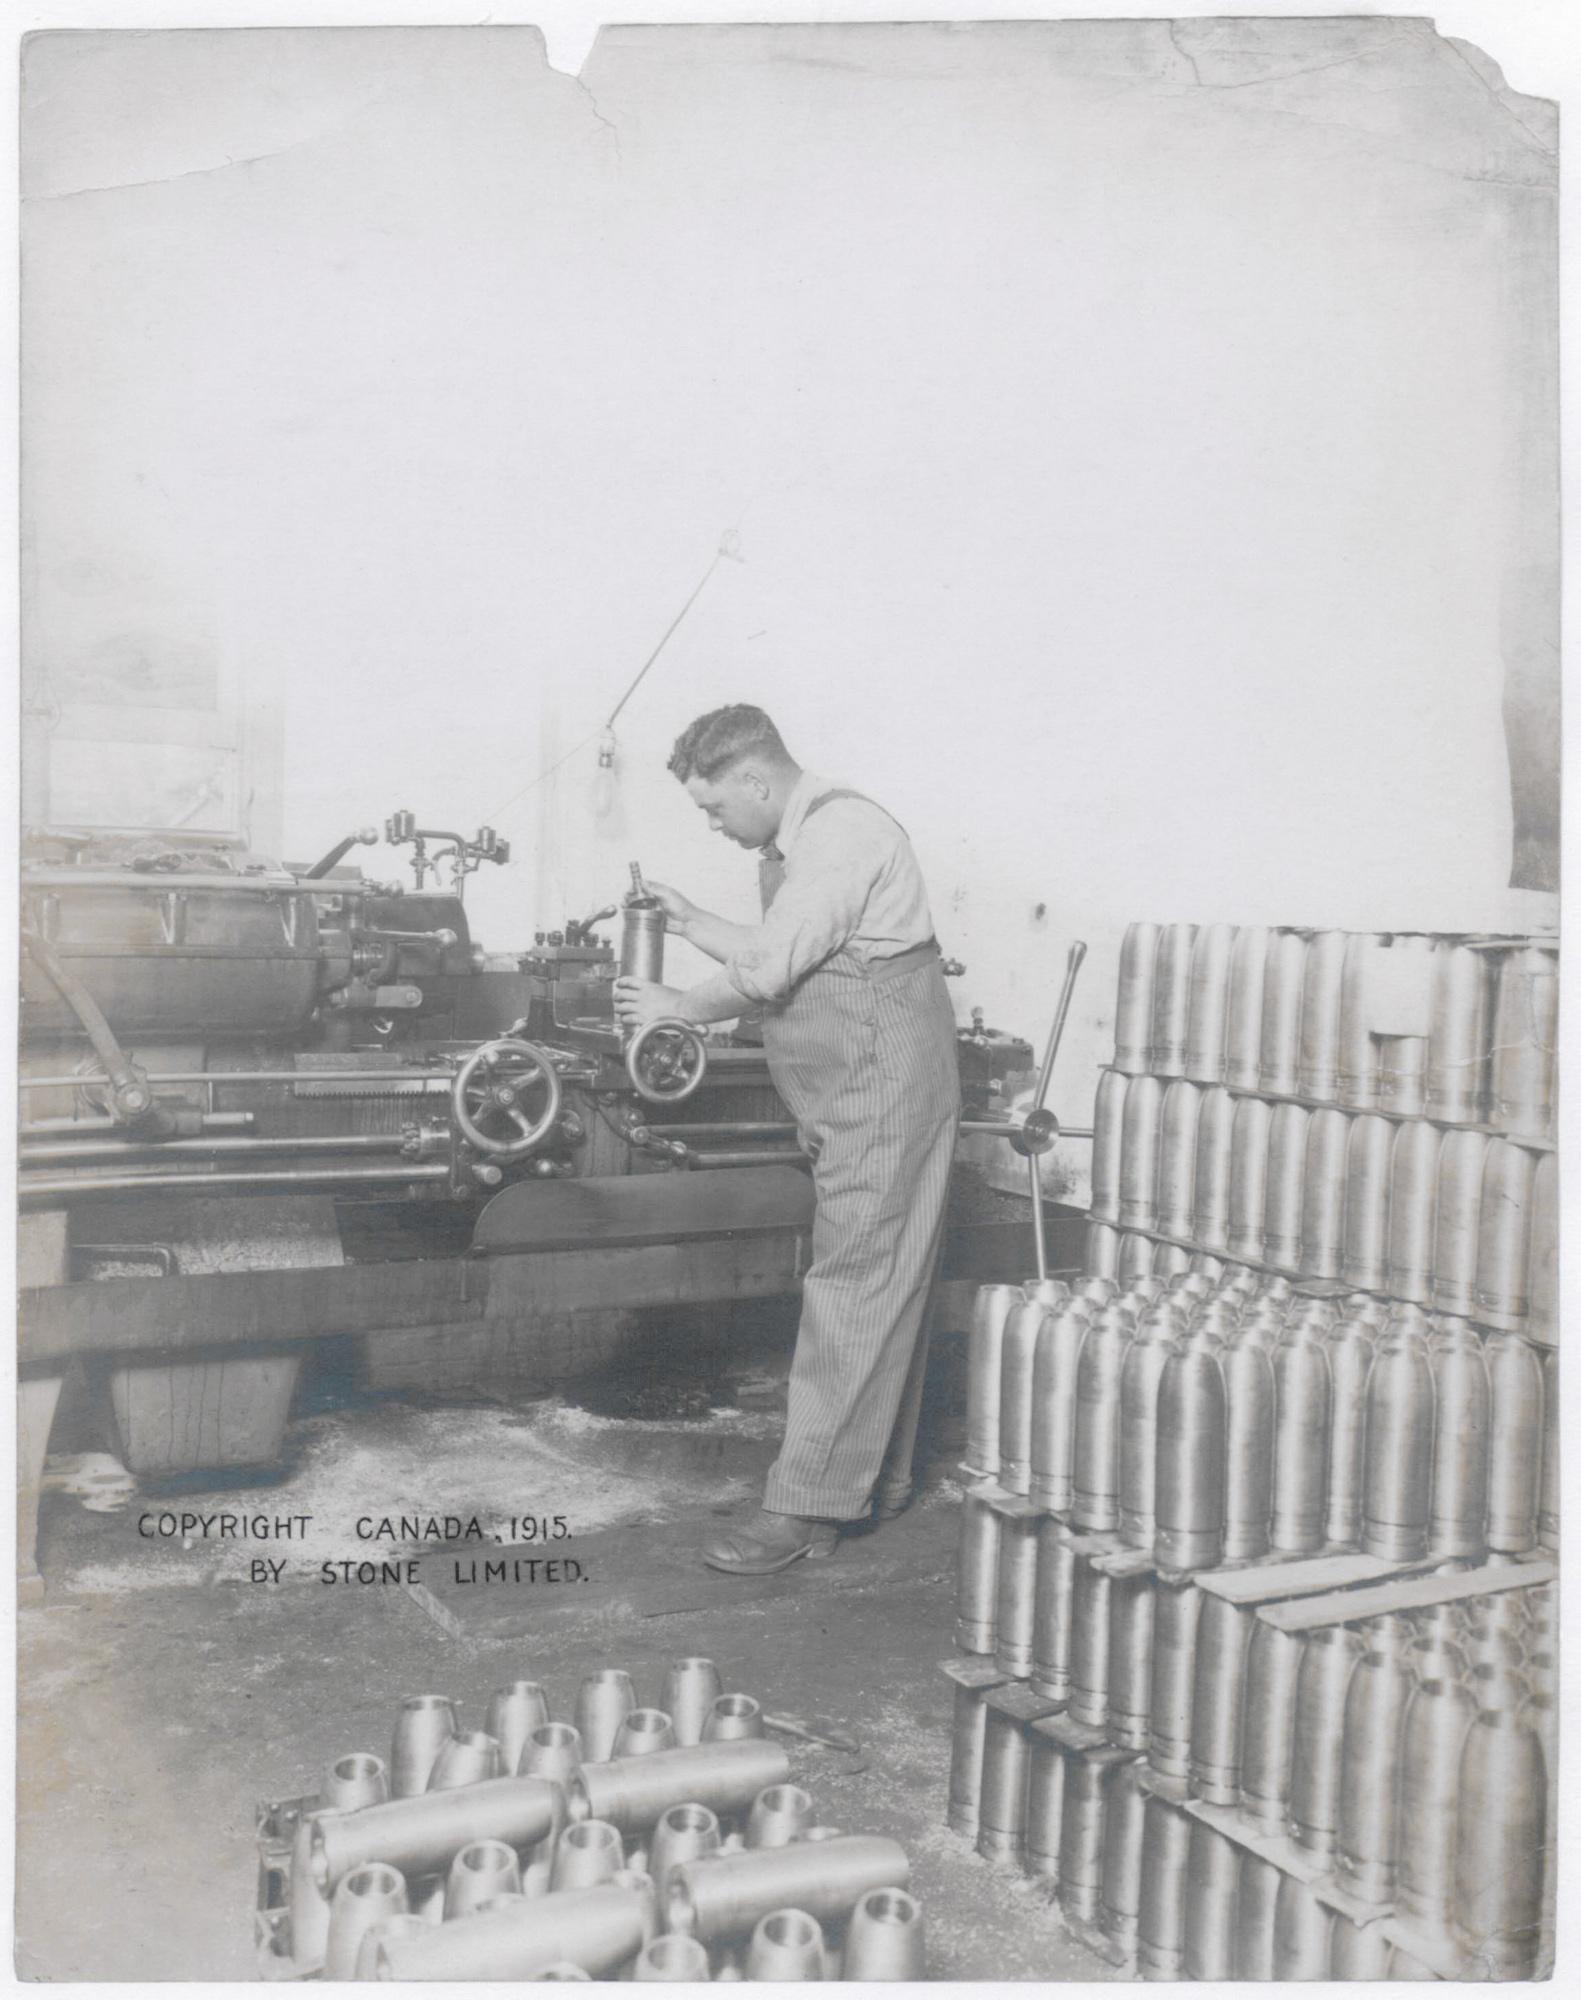 Man making shells for the war effort, from Stone Limited